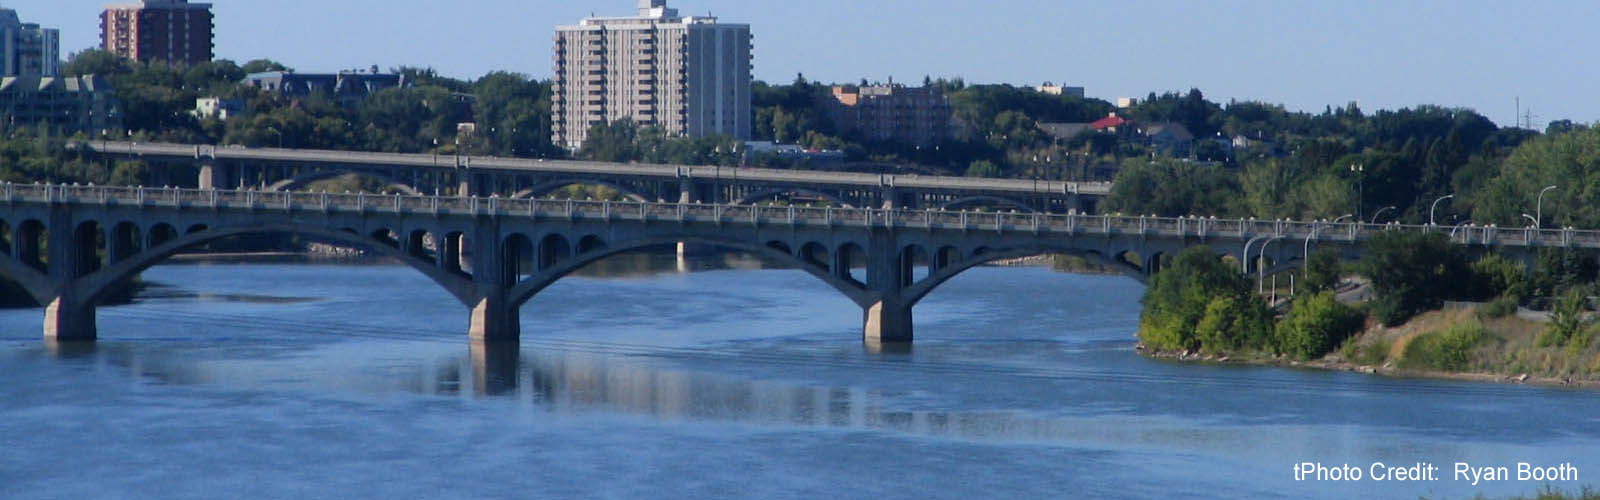 Saskatoon - Bridges view - sliver (Ryan Booth)